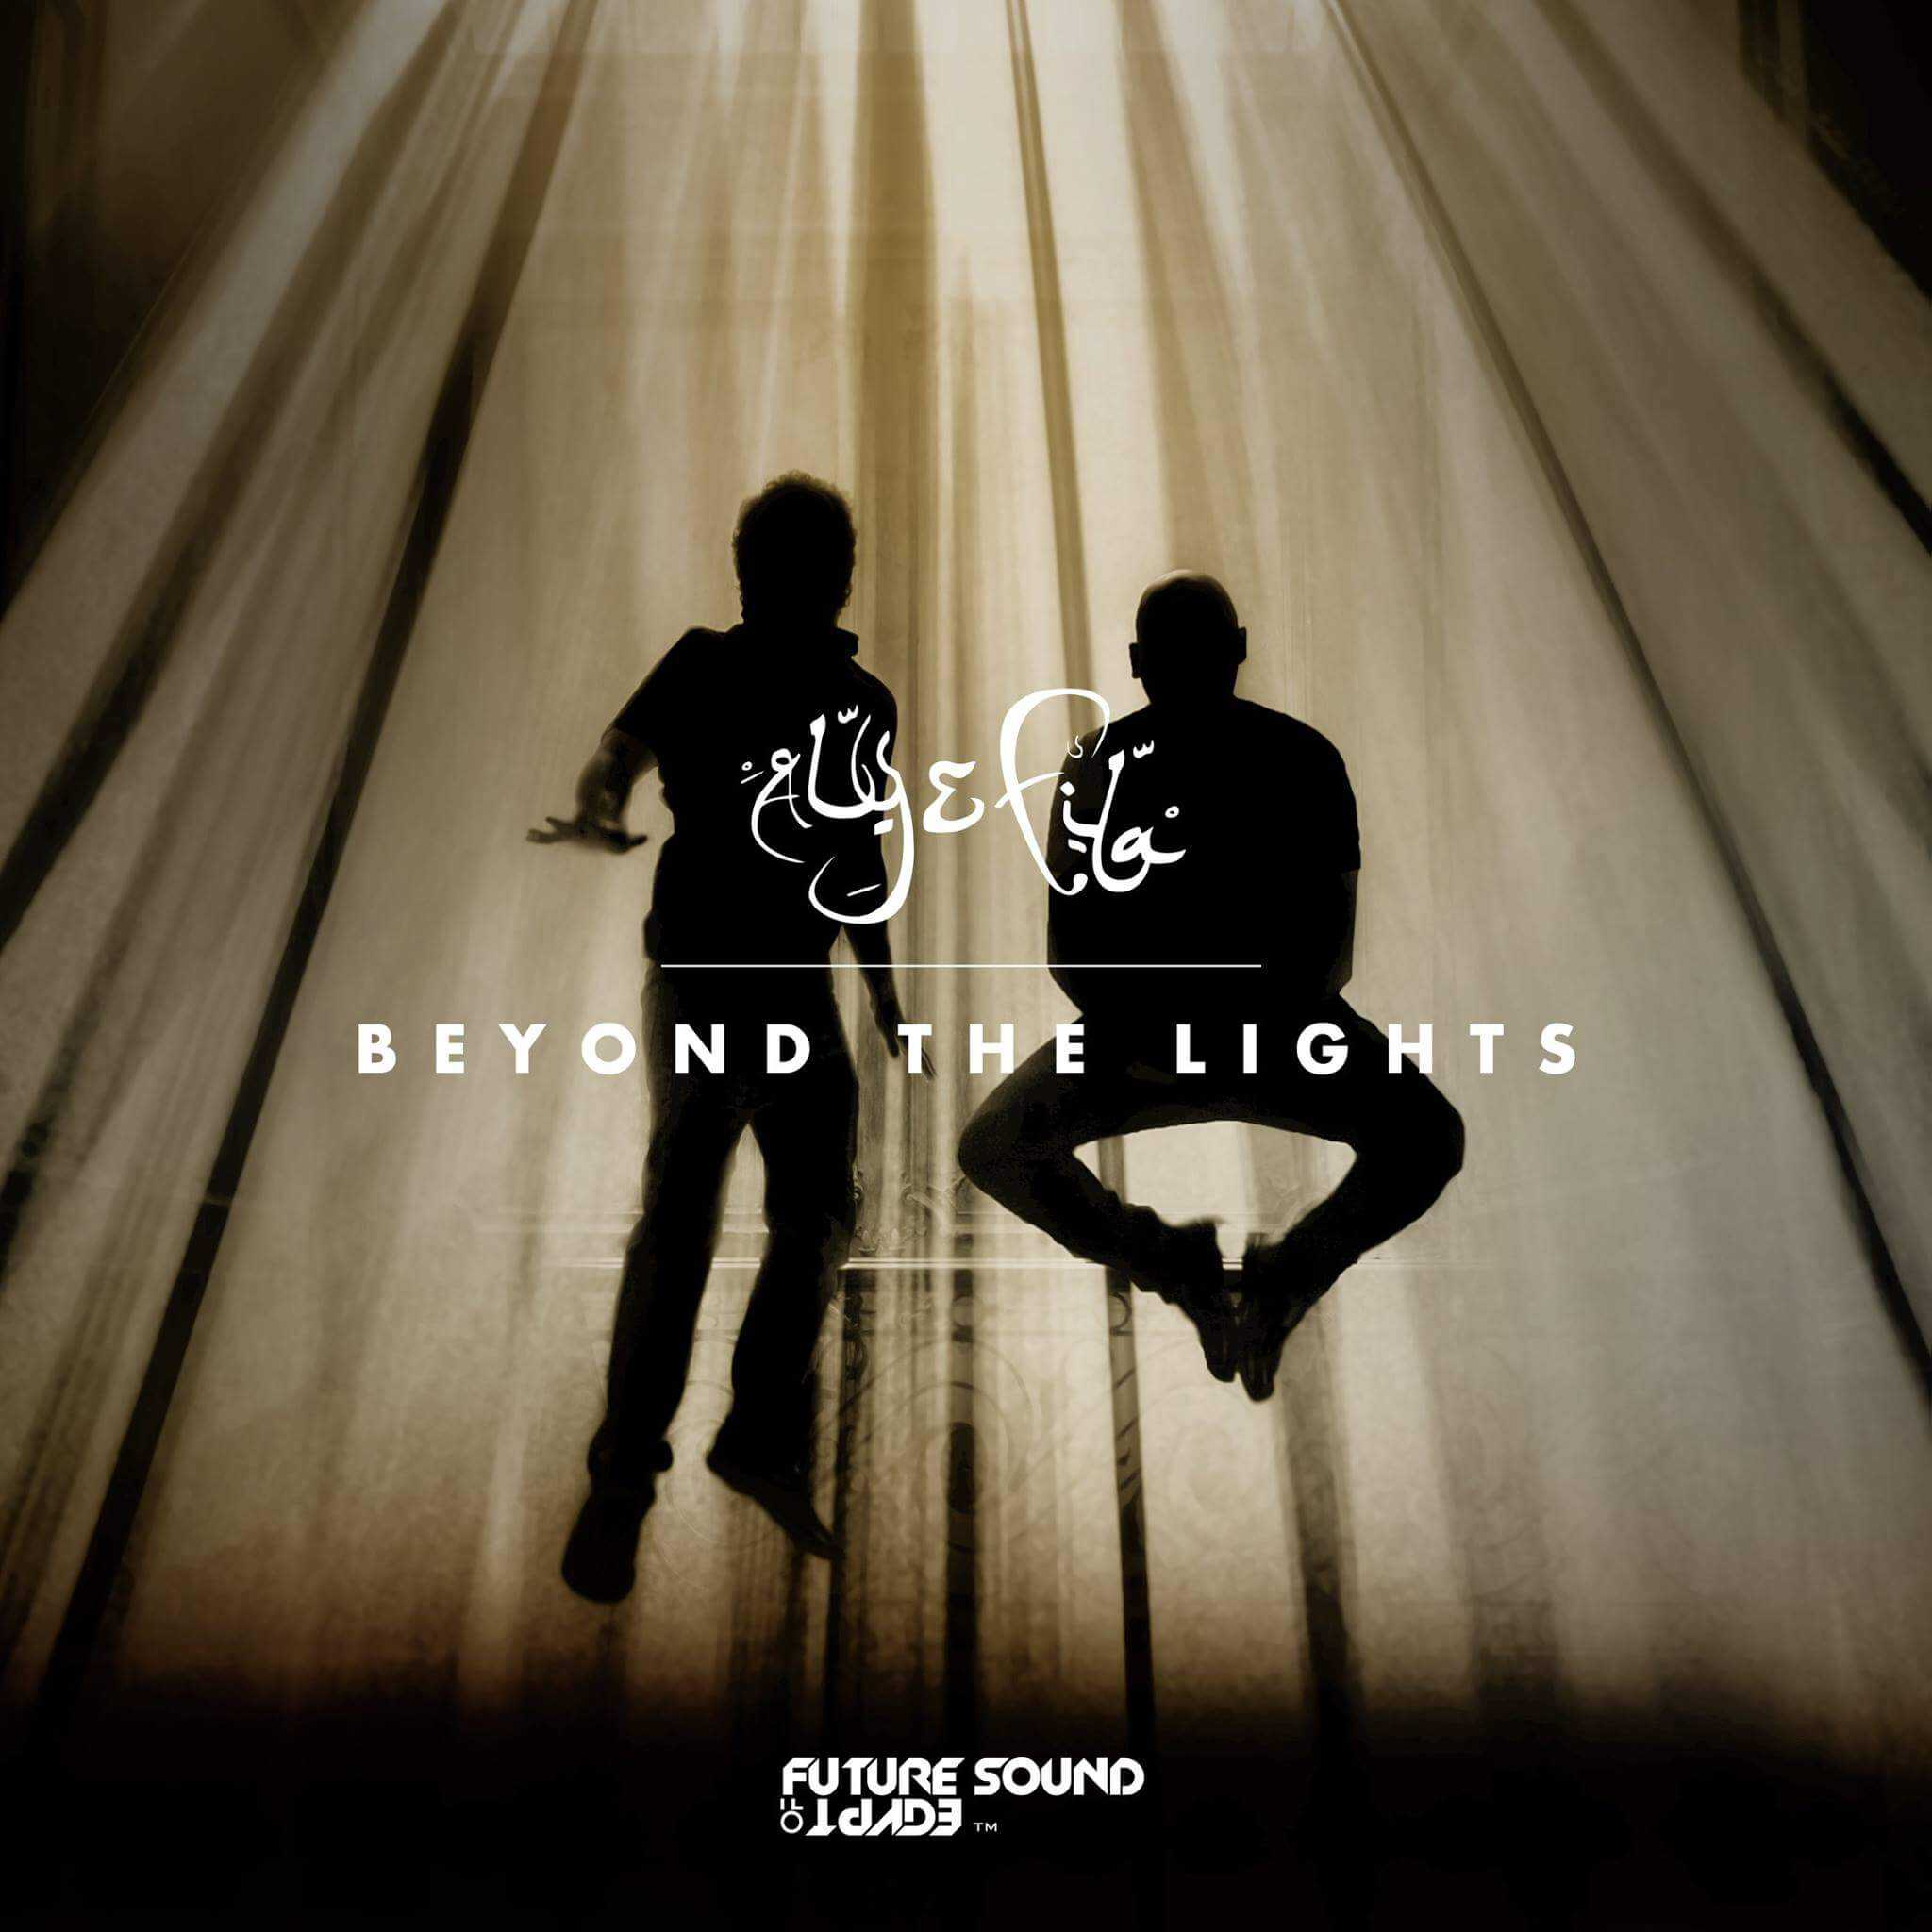 Aly & Fila Beyond the Lights